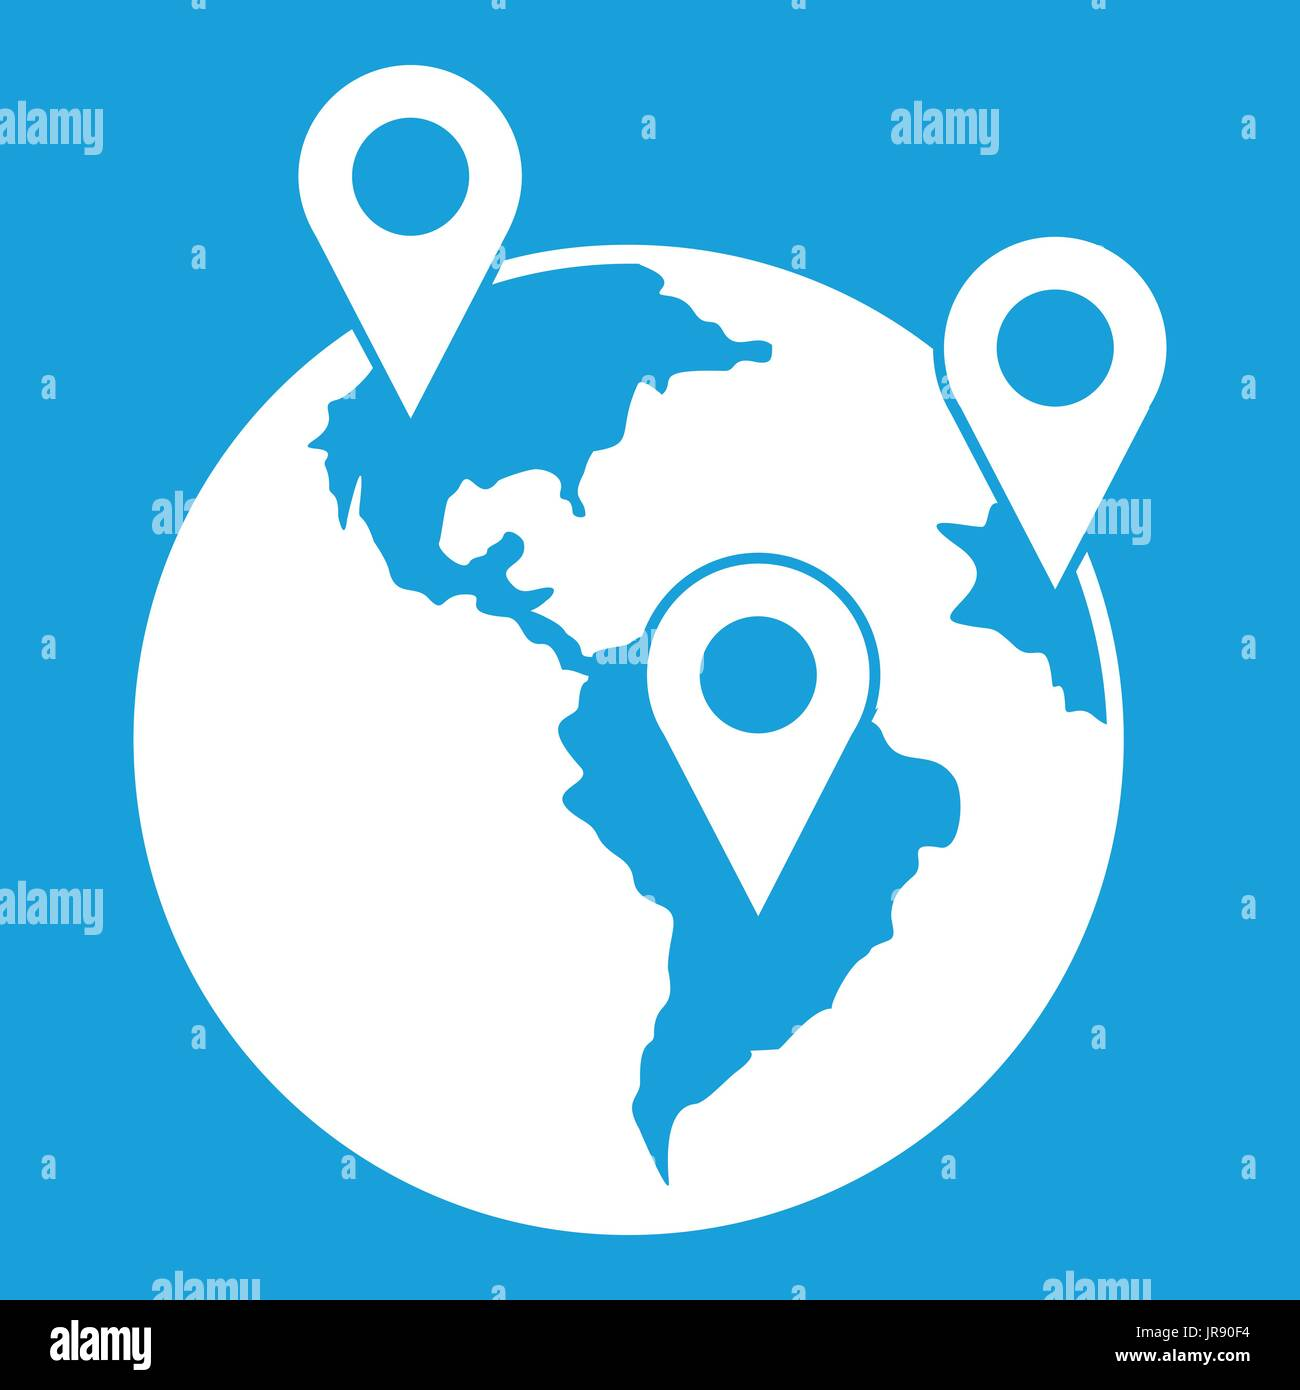 Globe and map pointers icon white stock vector art illustration globe and map pointers icon white gumiabroncs Gallery